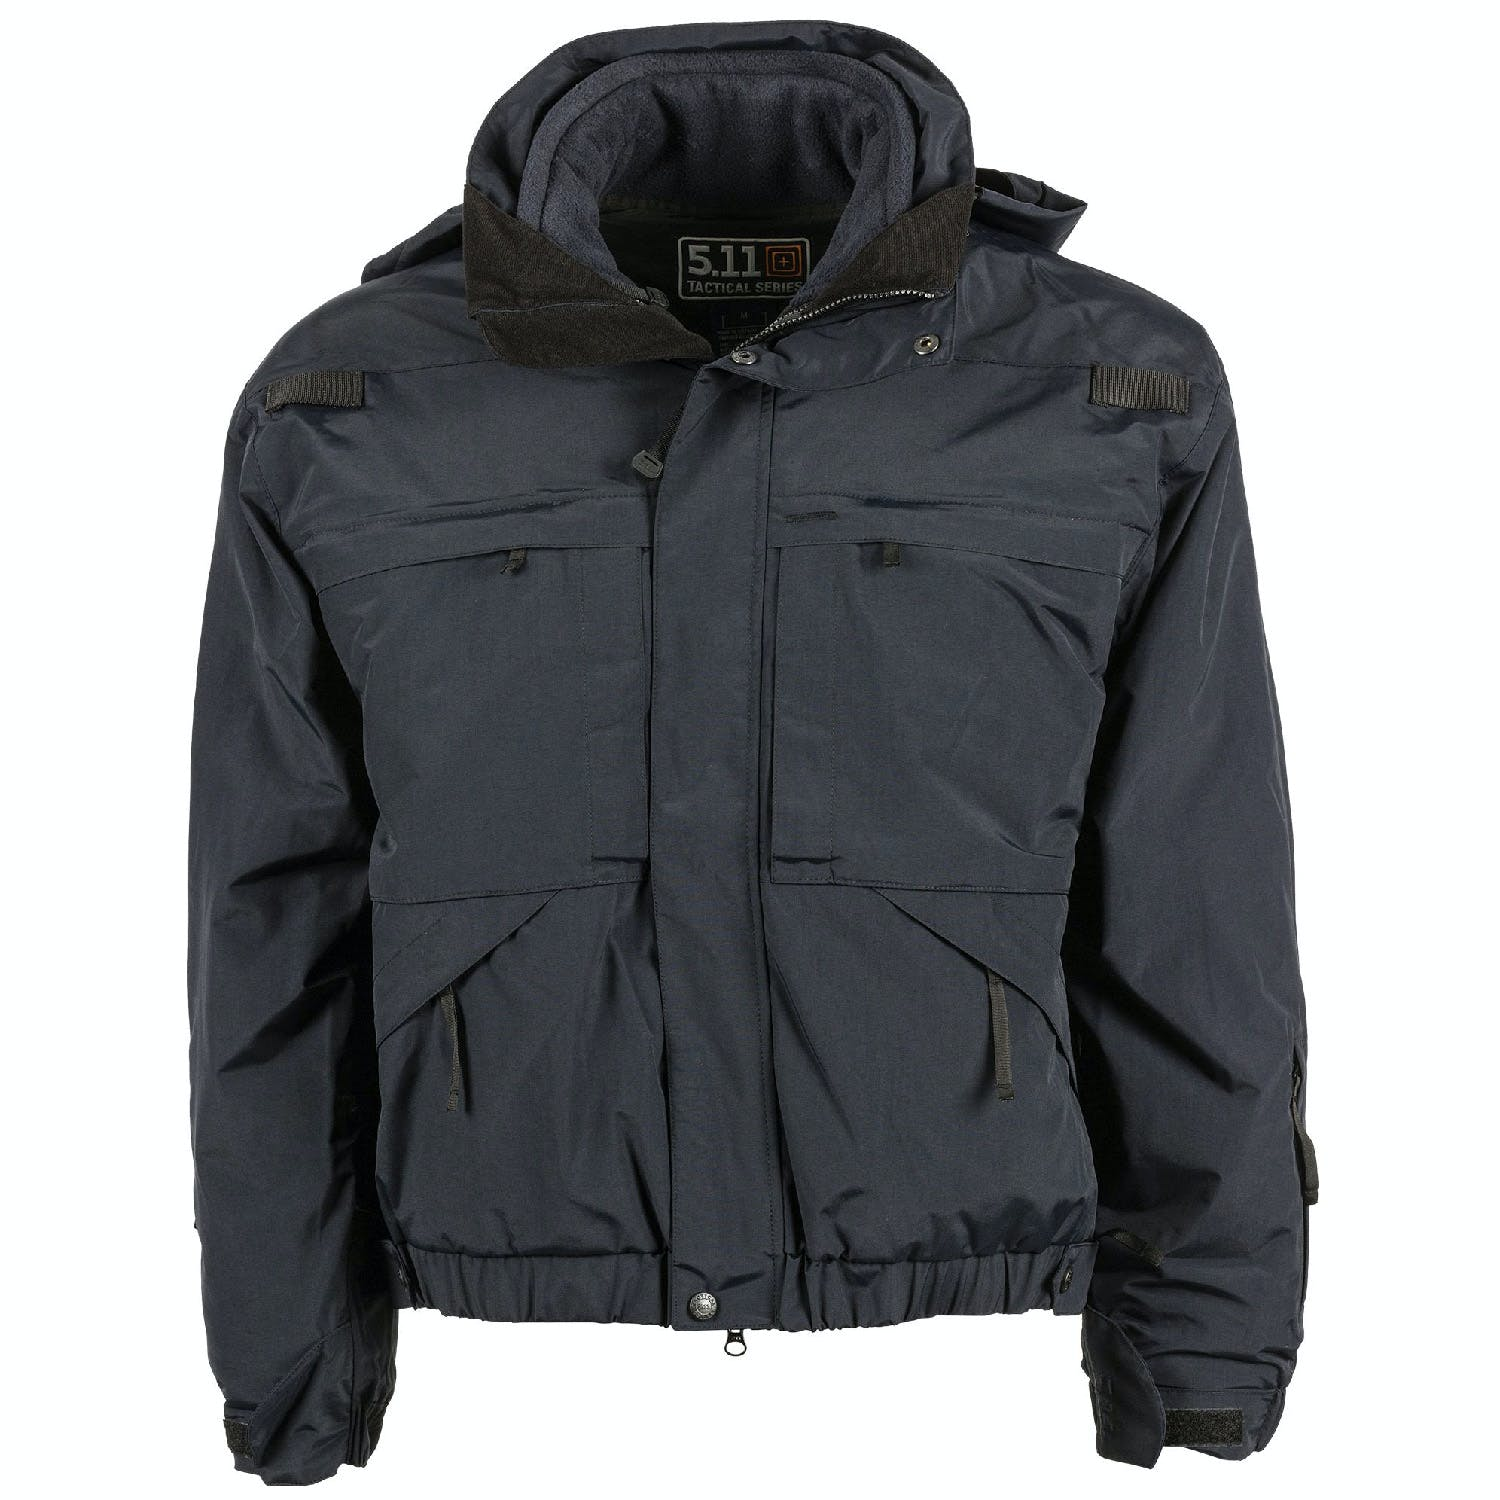 5 11 Tactical 5 In 1 Jacket From Nightgear Uk